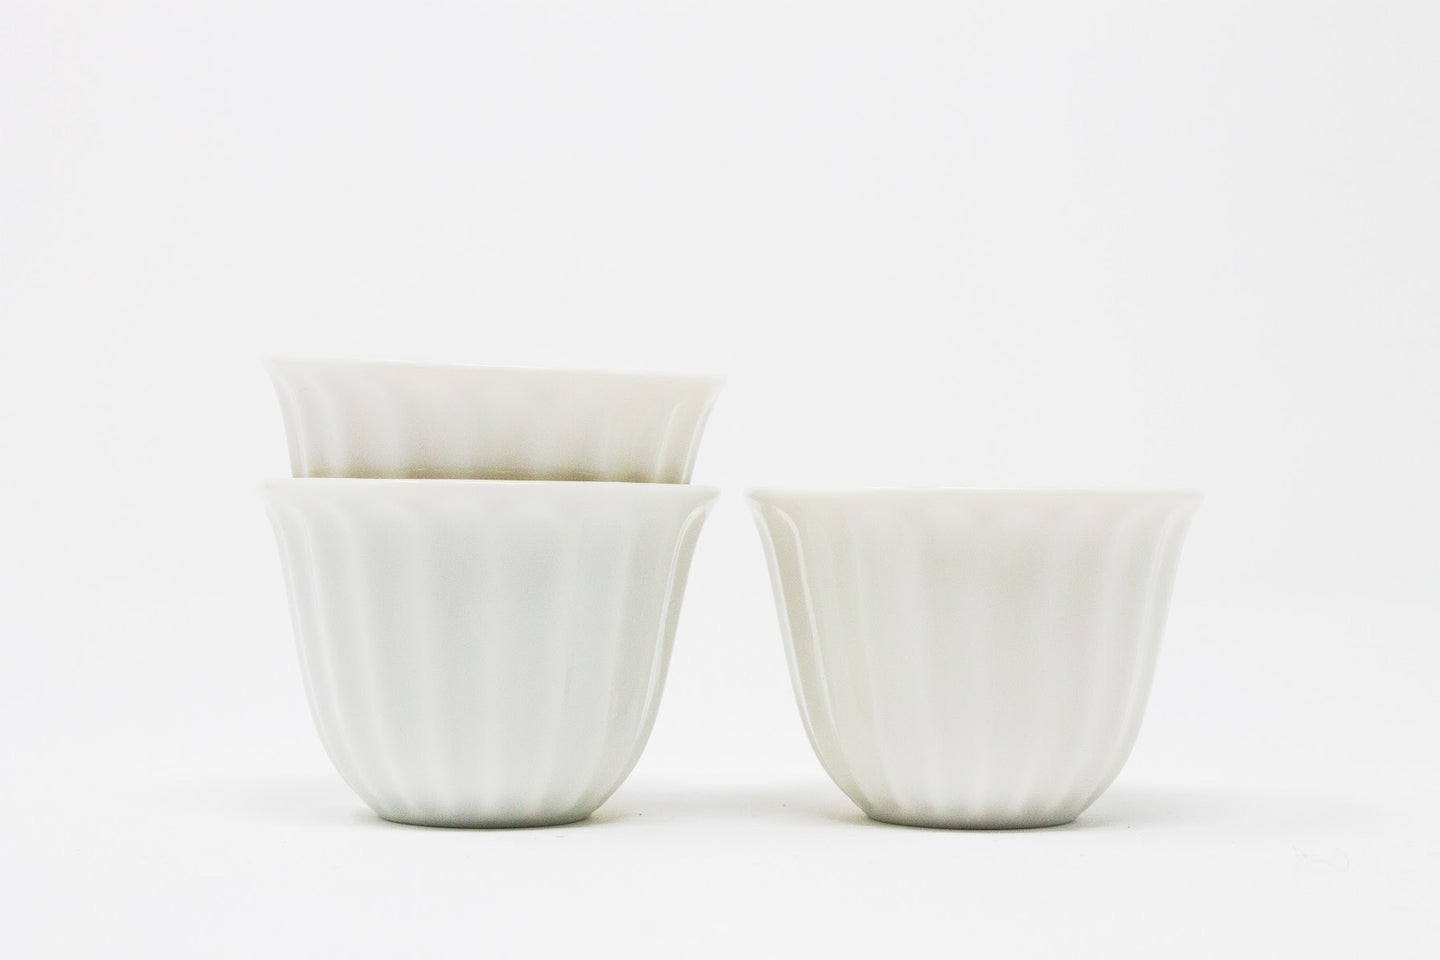 japanese white porcelain beginner cups